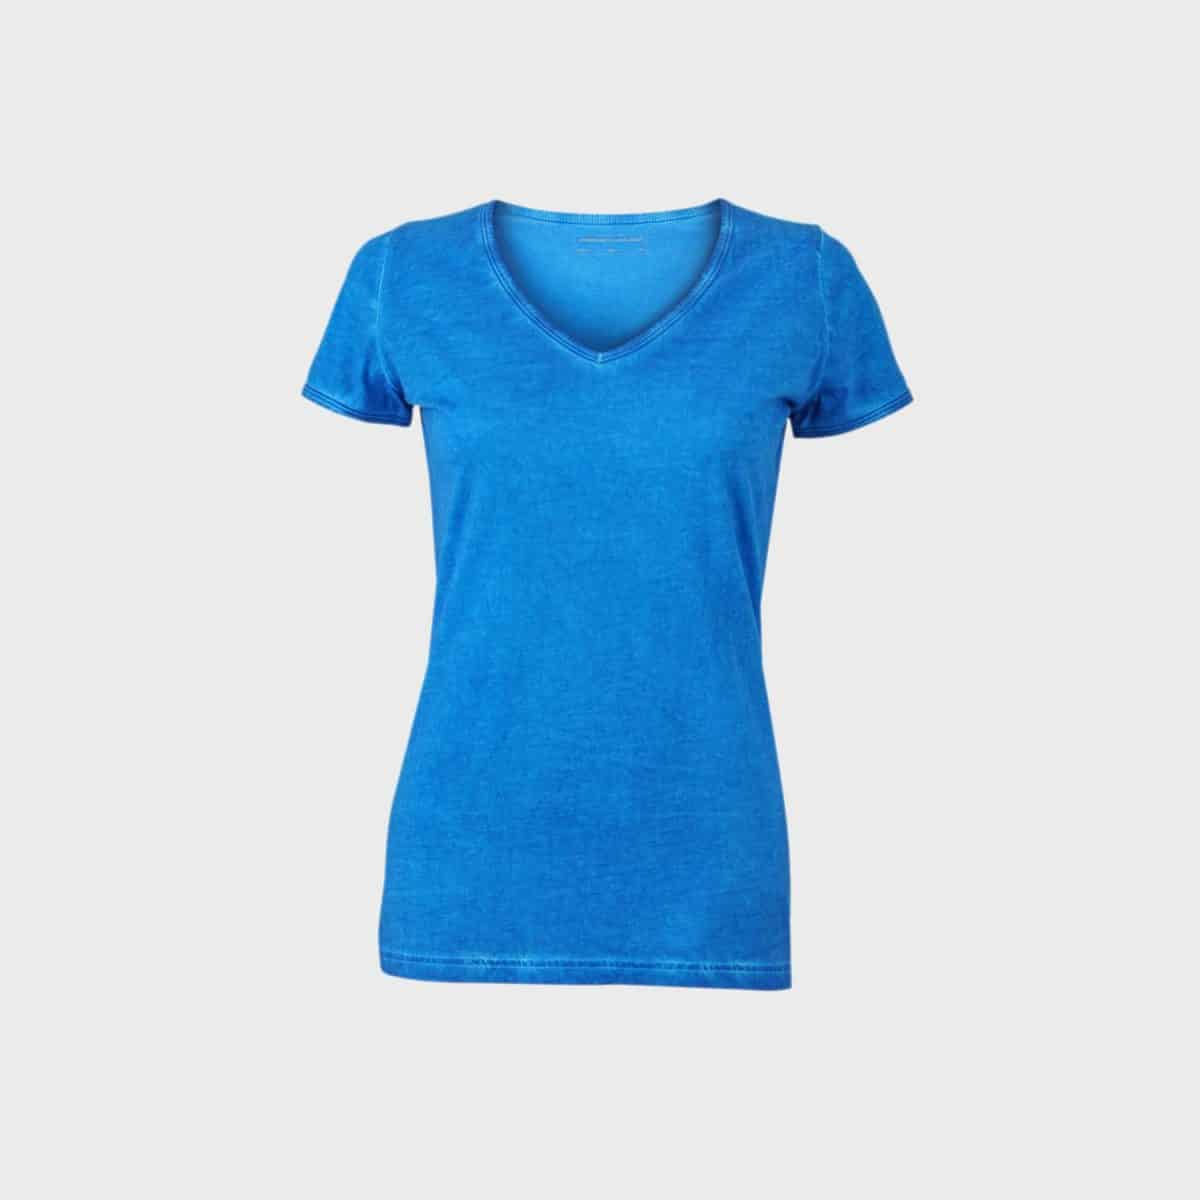 v-neck-gipsy-t-shirt-damen-kaufen-besticken_stickmanufaktur